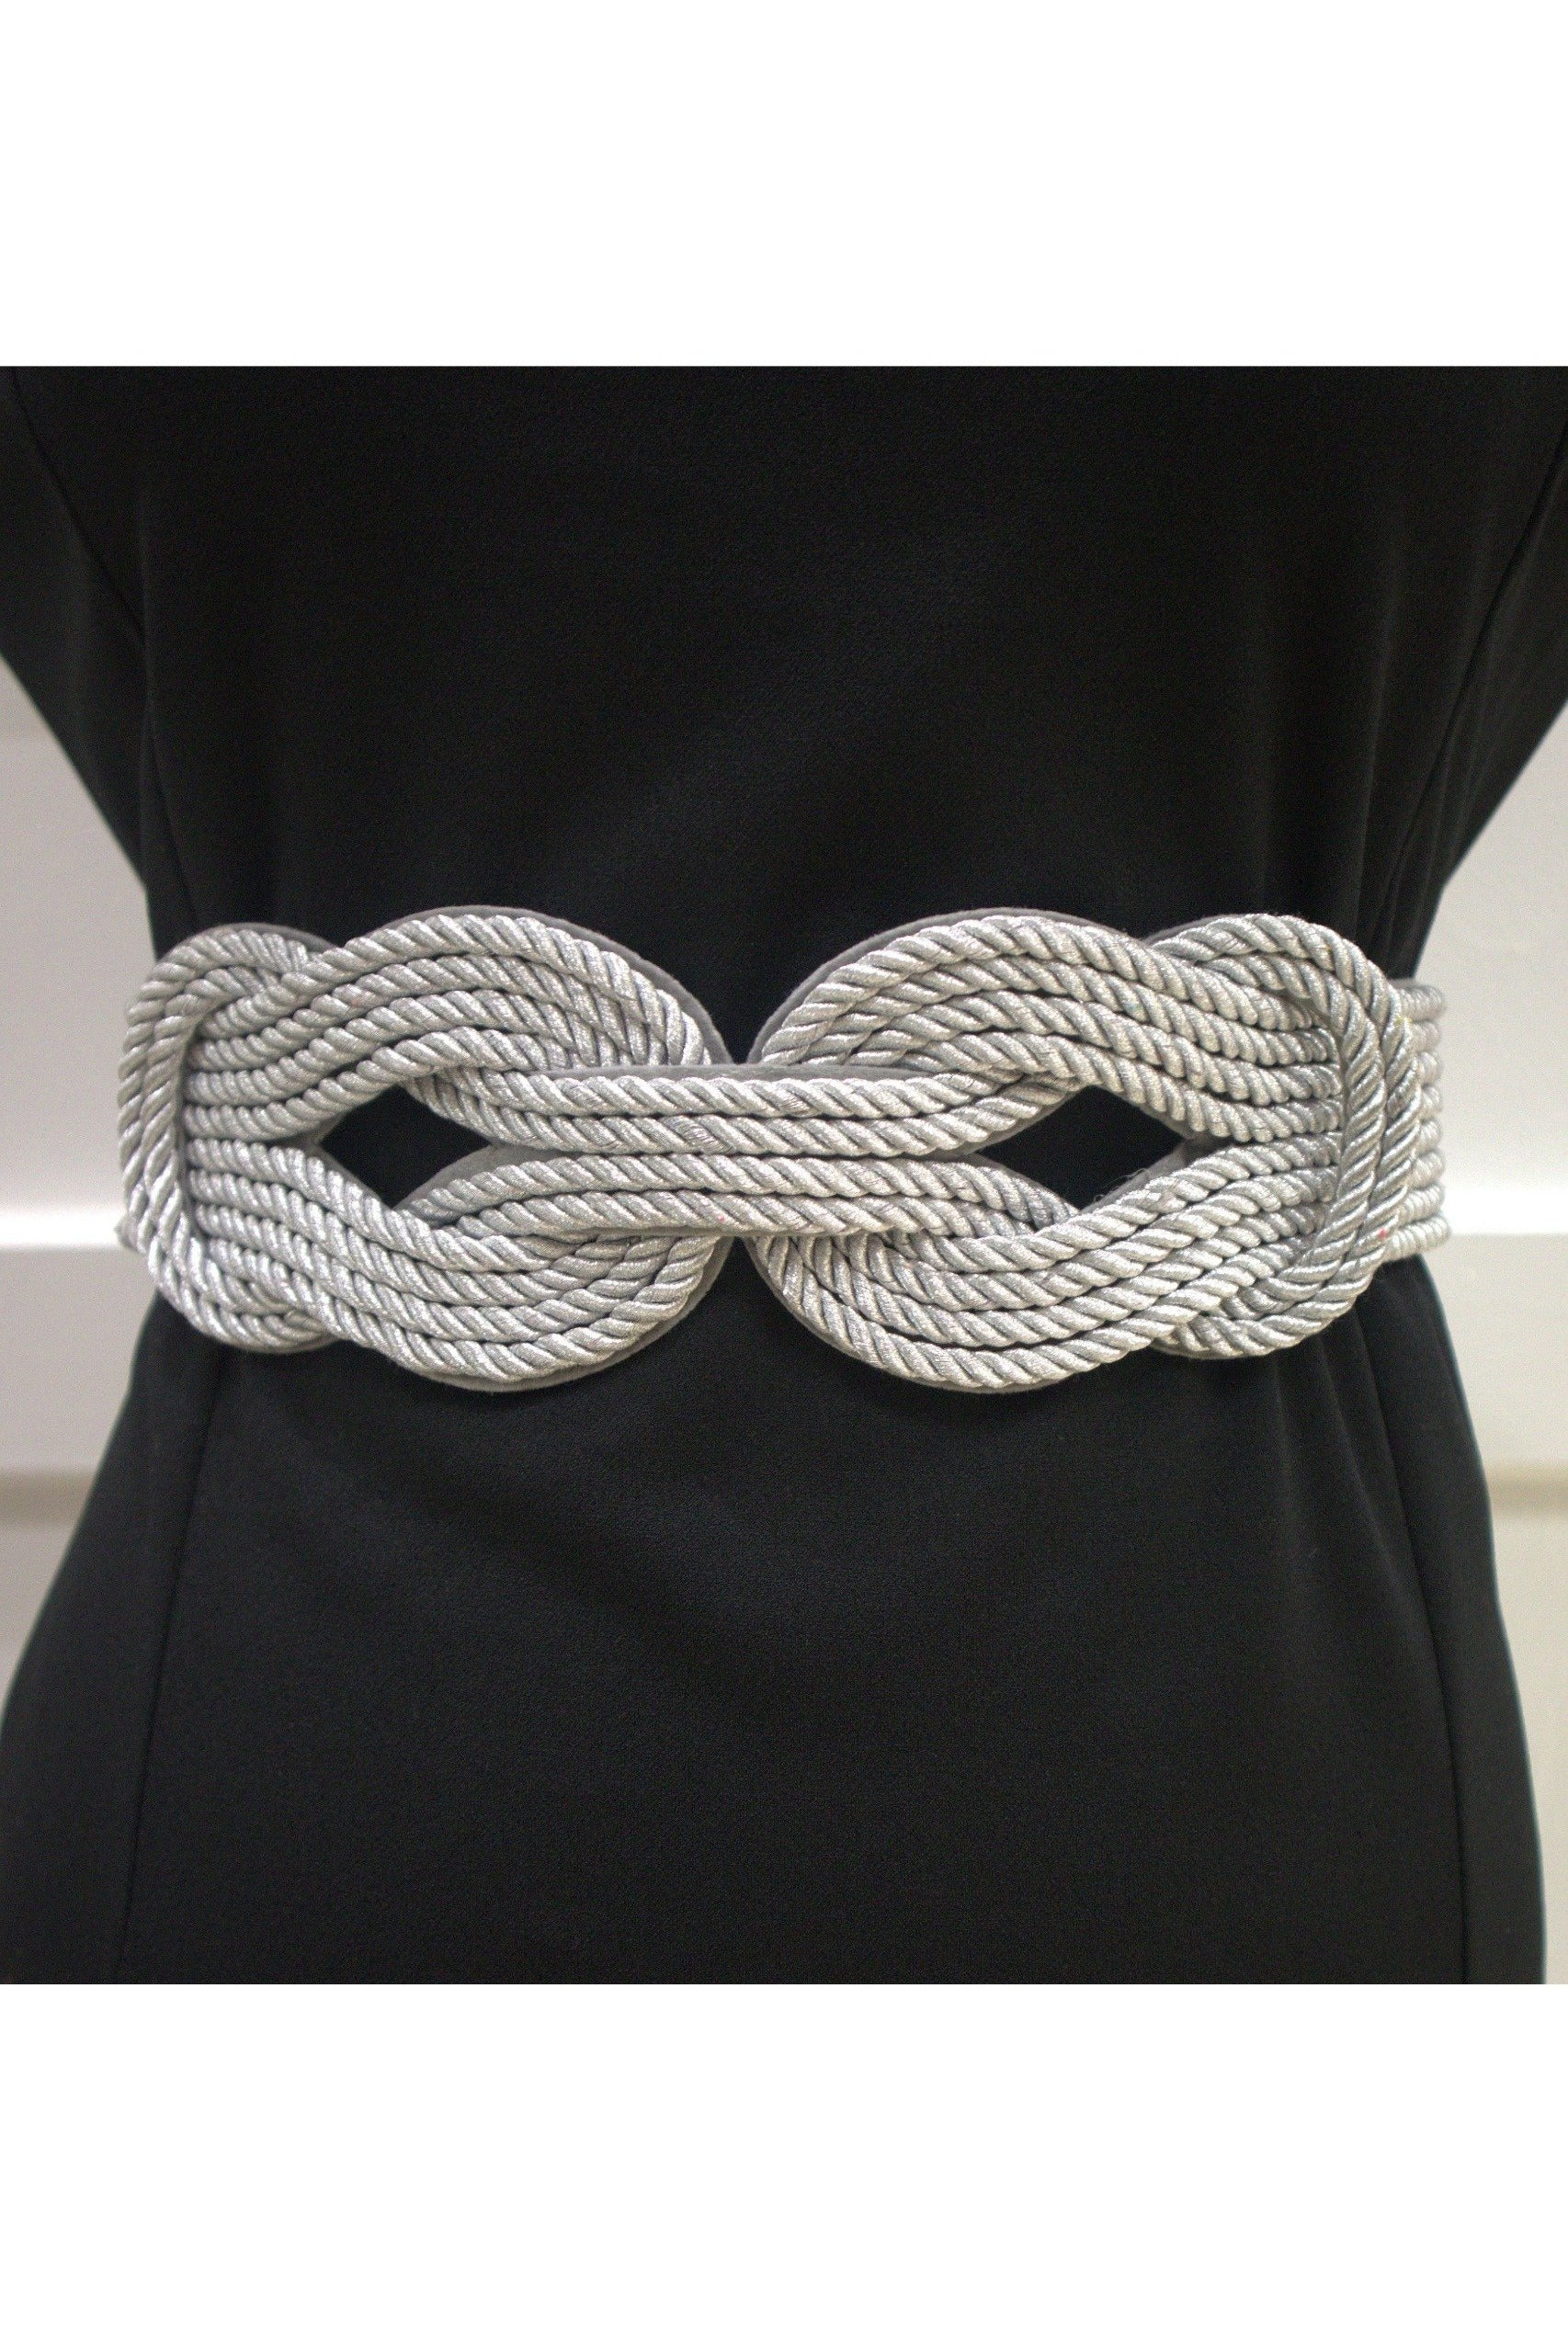 Cinch Waist Belt - Double Knot Silver